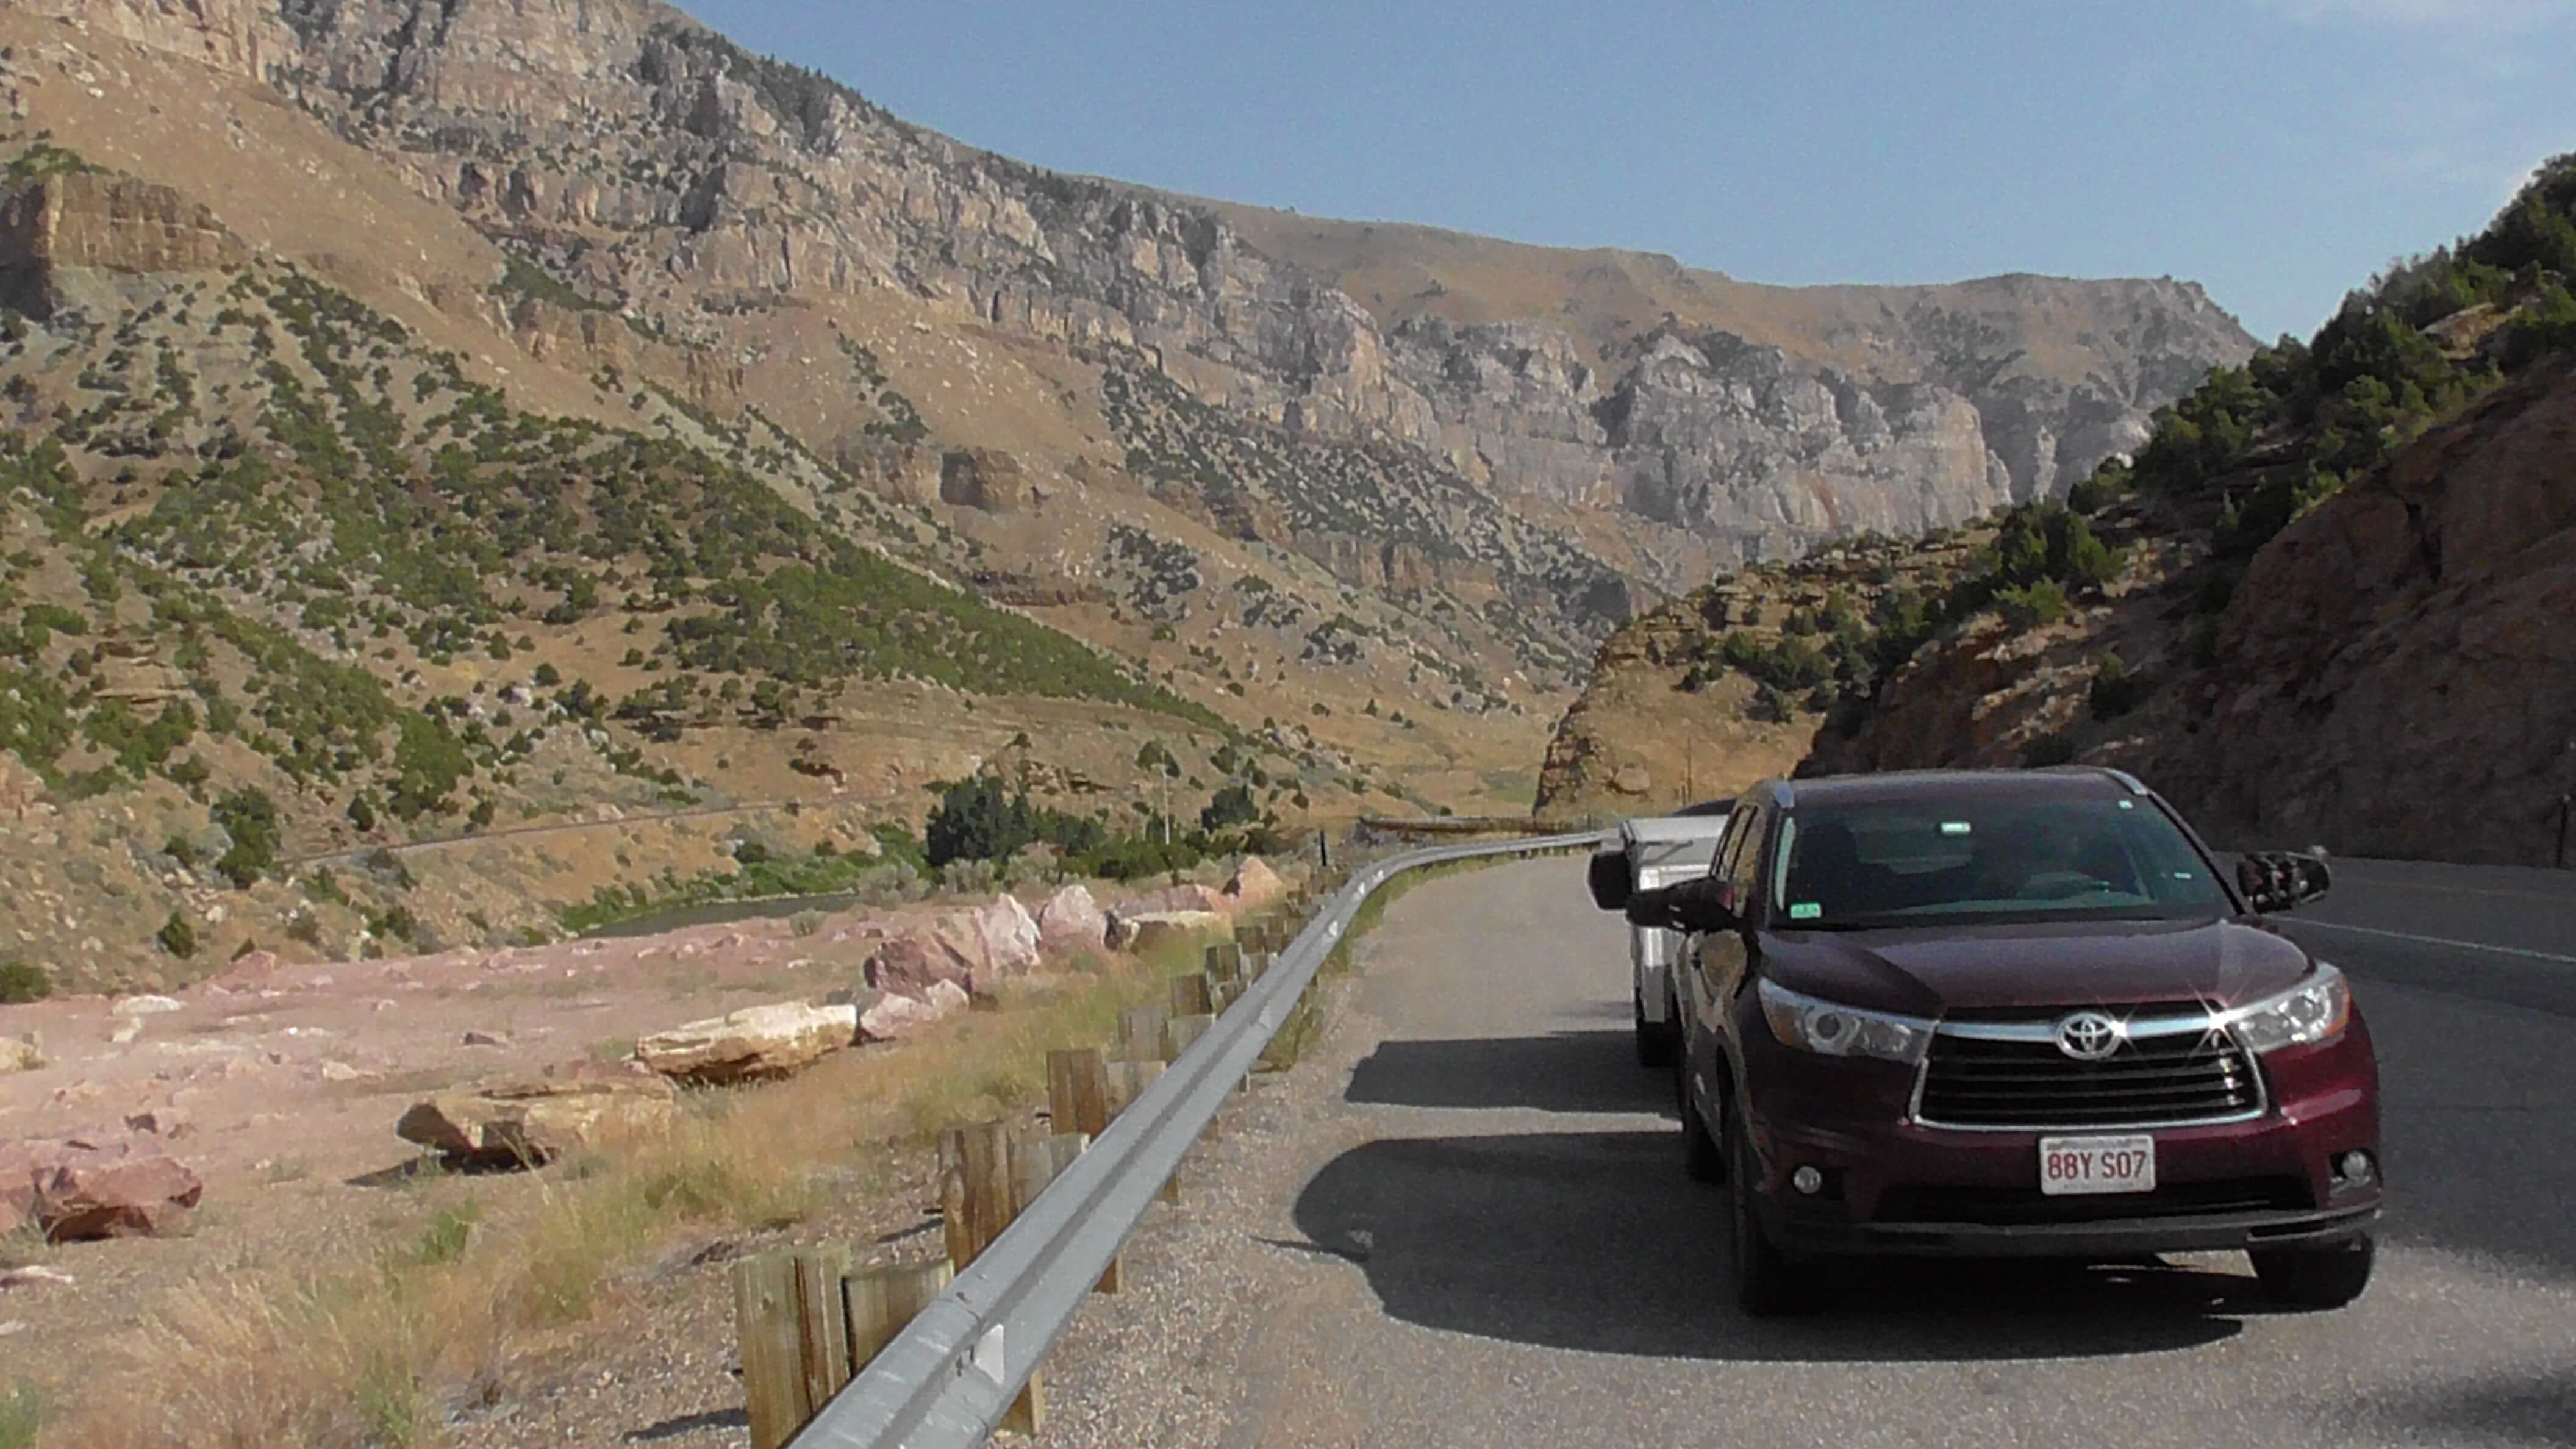 Wind River Canyon, Wyoming